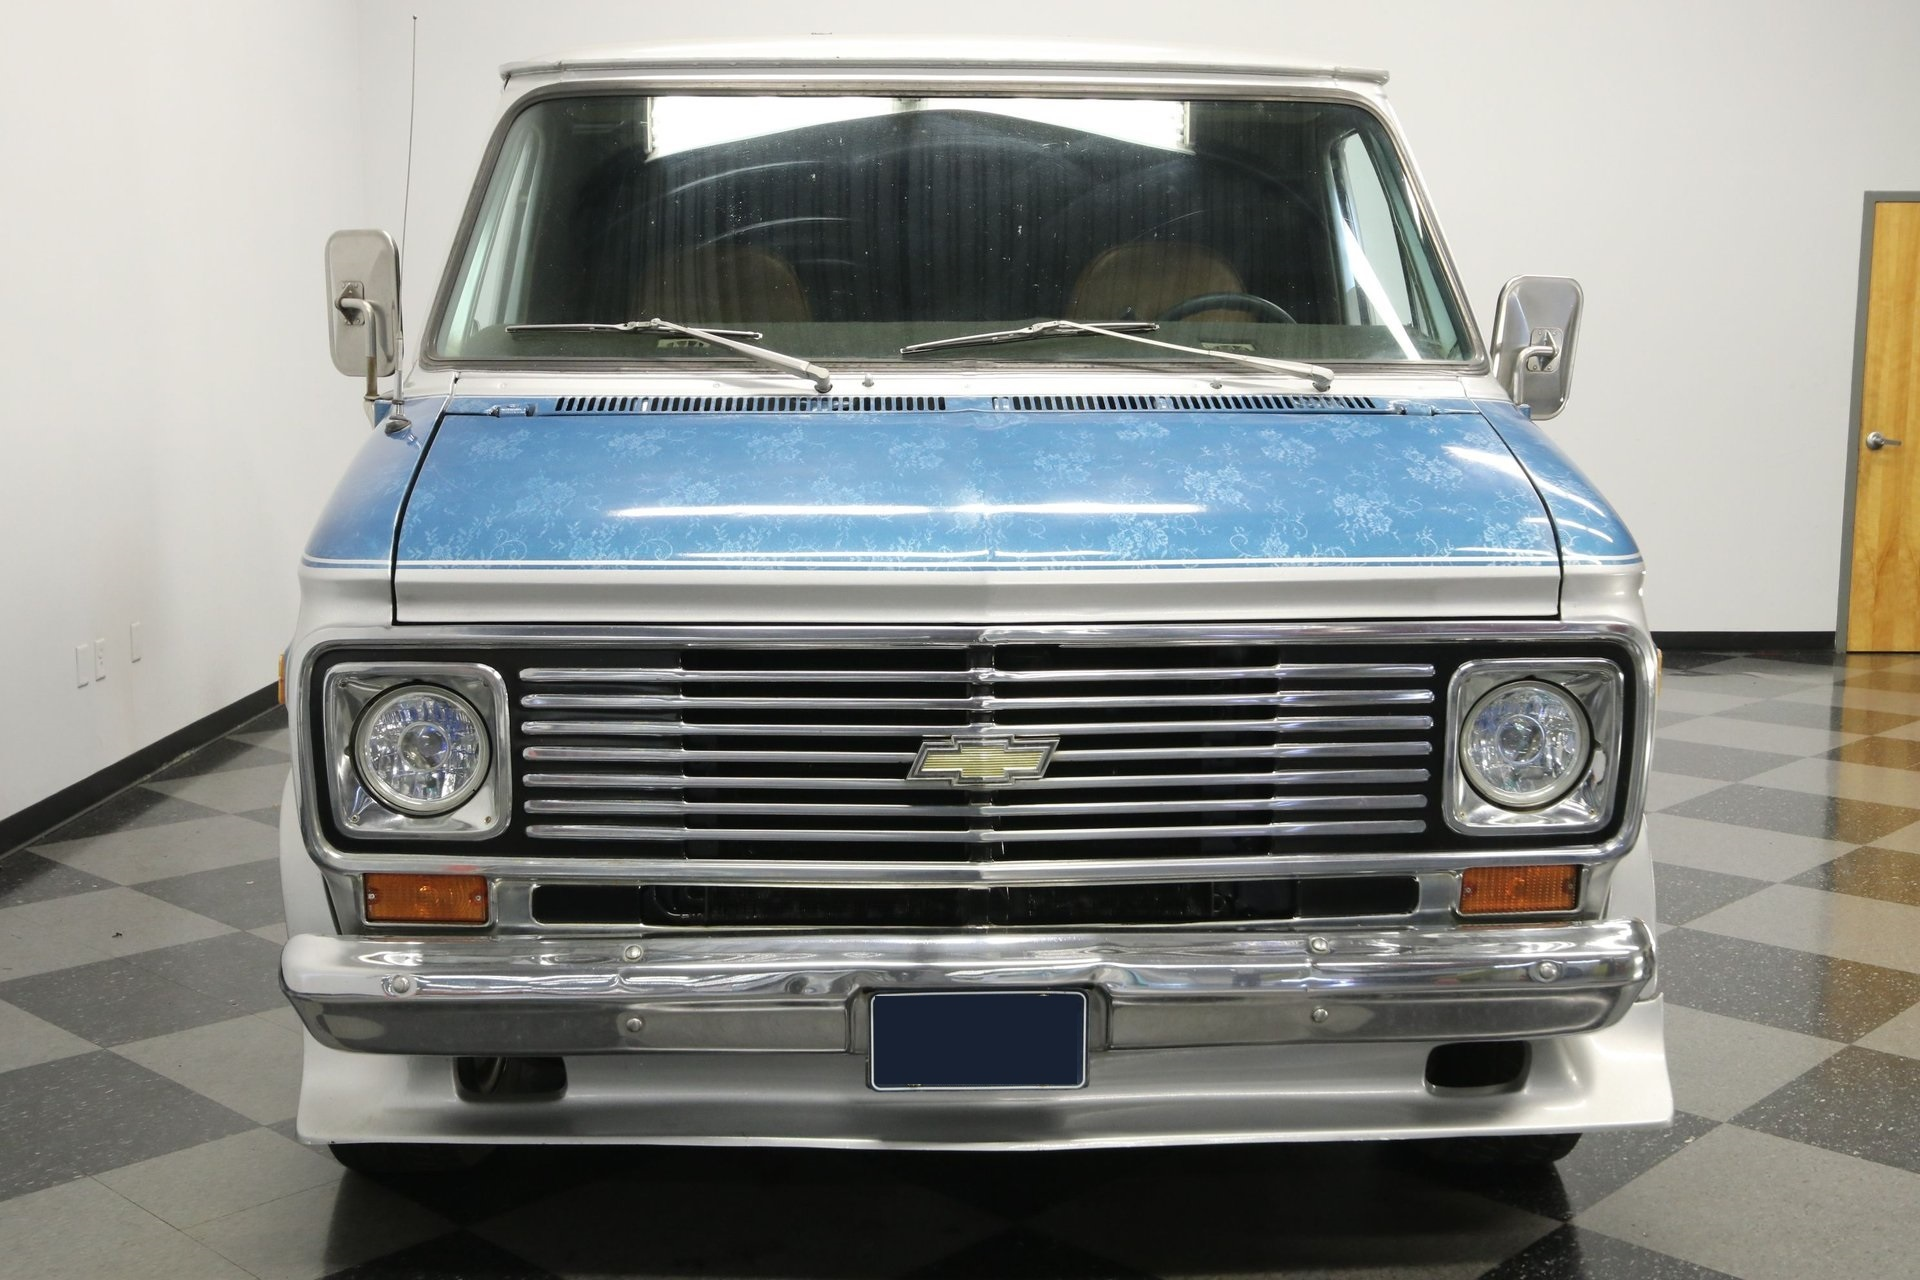 1977-chevrolet-g20-shorty-van-rddj3